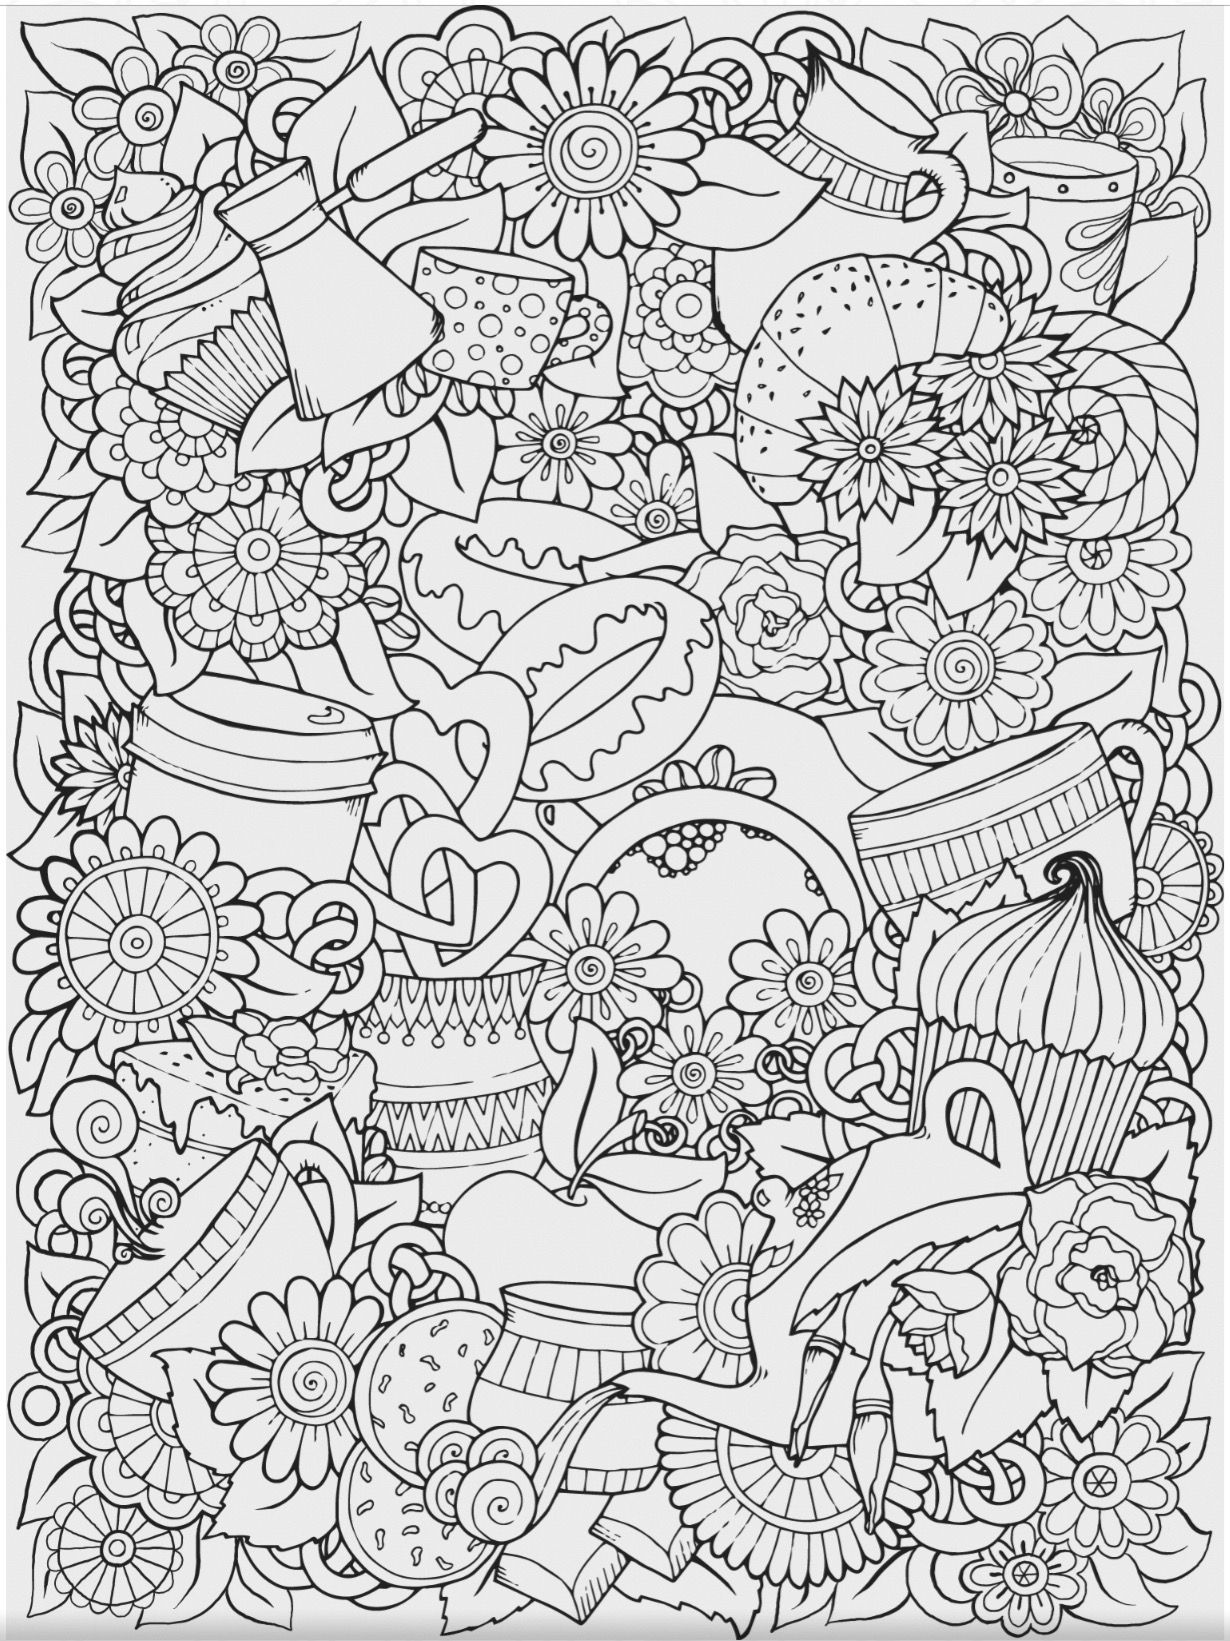 Pin by Carol Ratliff on Coloring! X5 Adult coloring